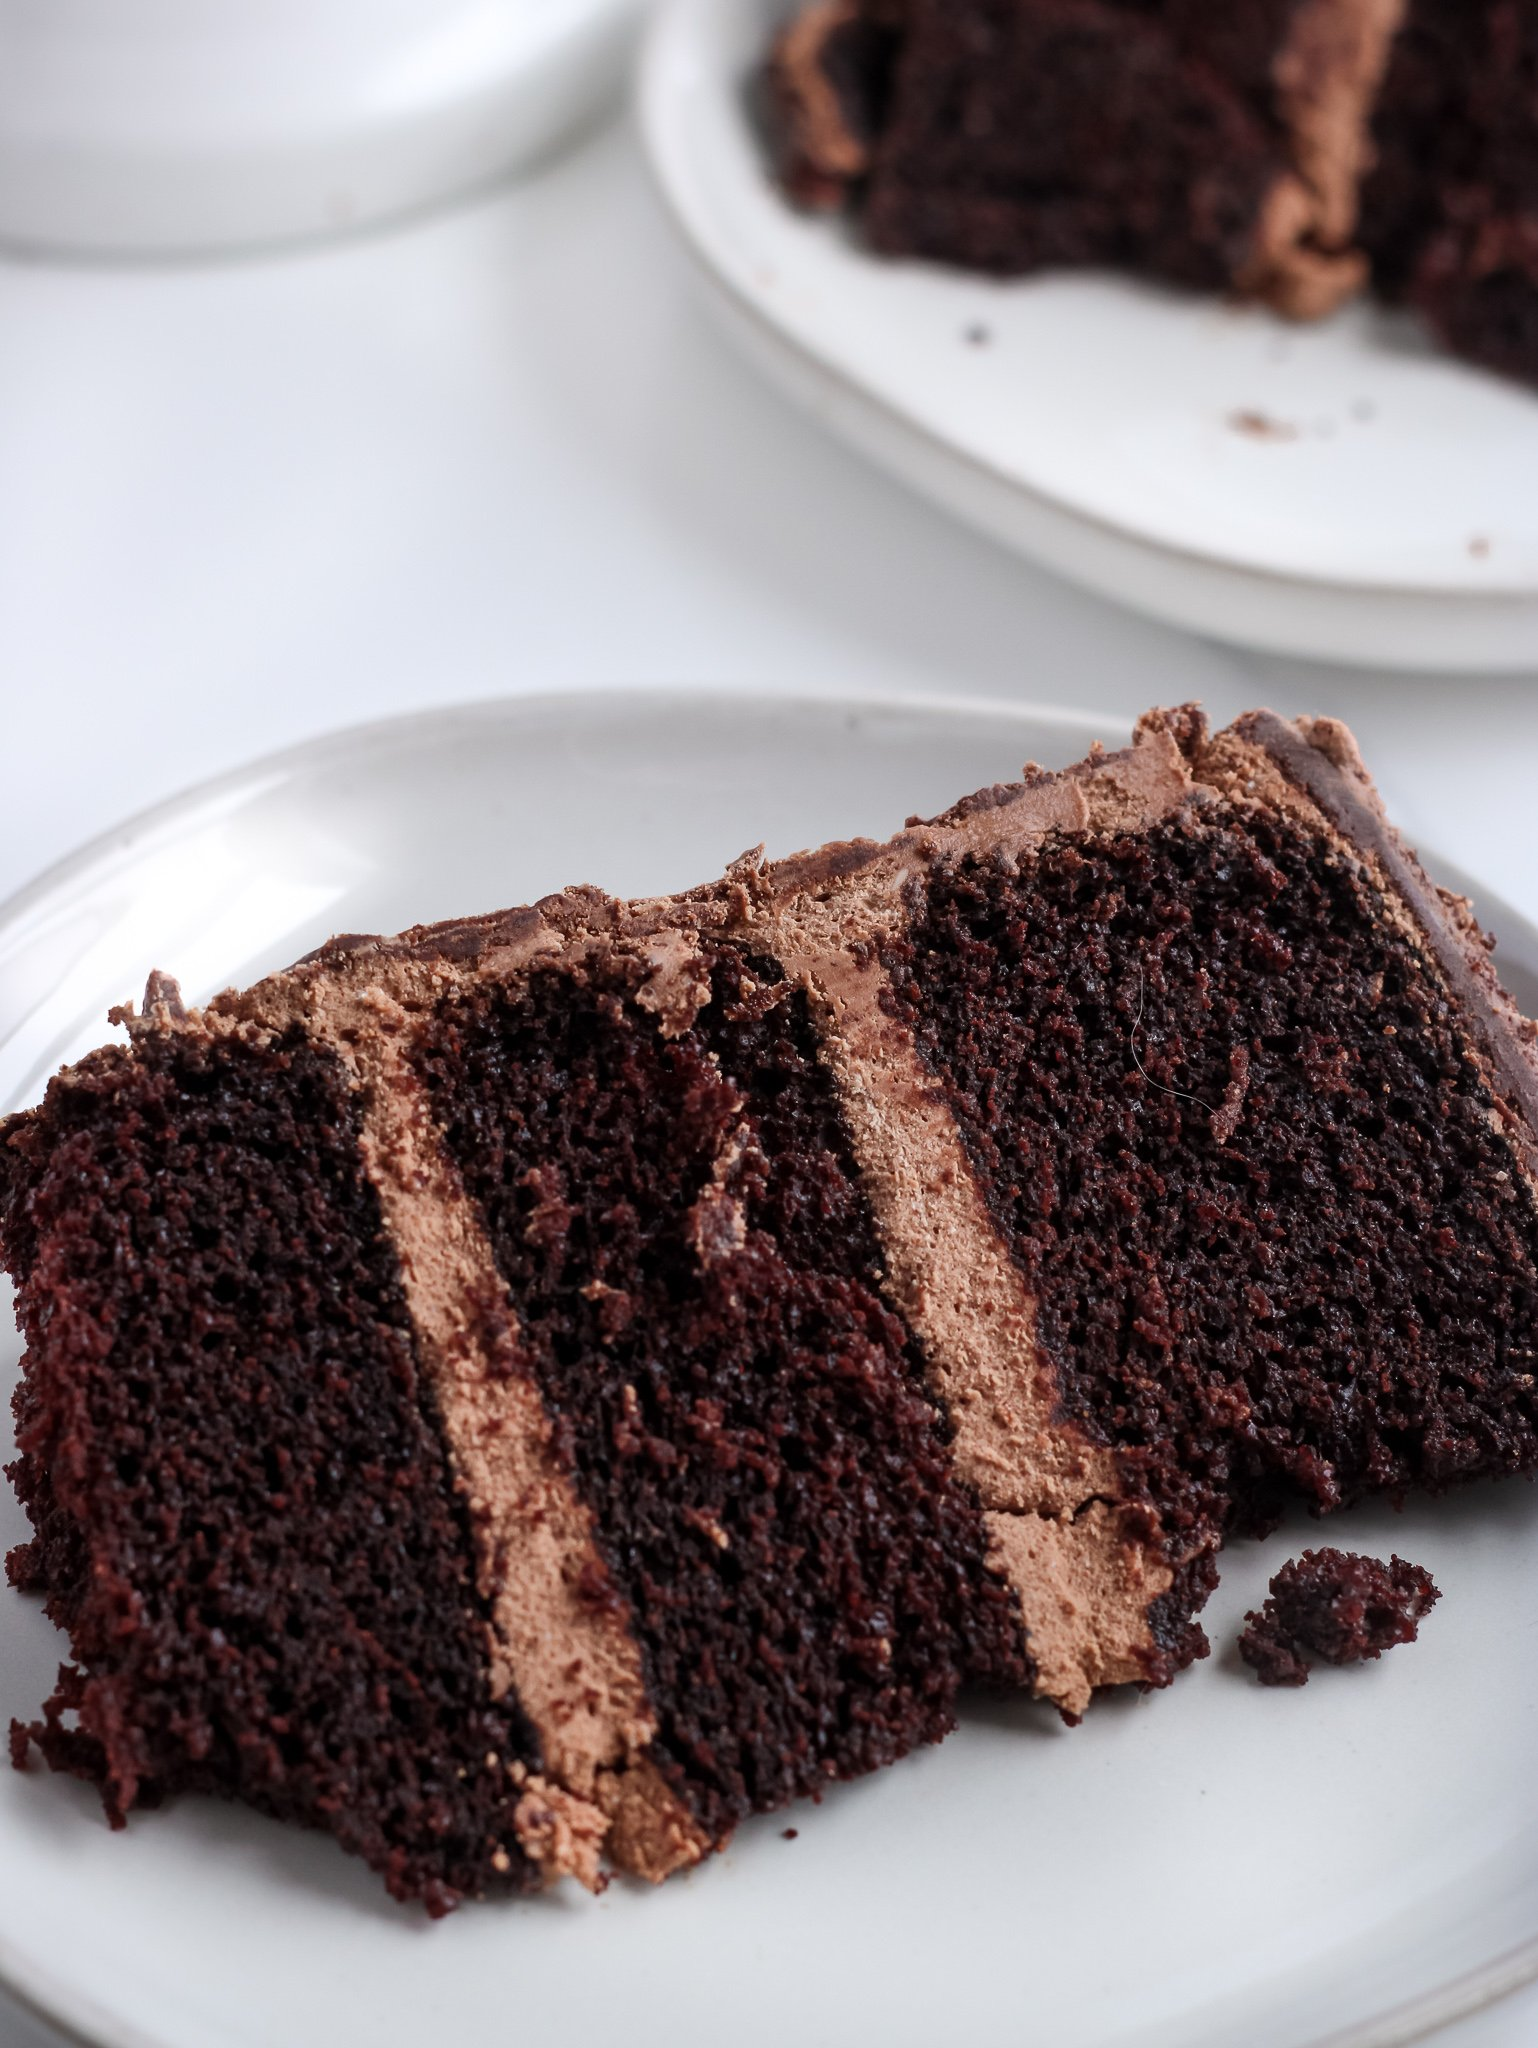 A slice of gluten-free chocolate cake with chocolate swiss meringue buttercream sitting on a alight grey plate.